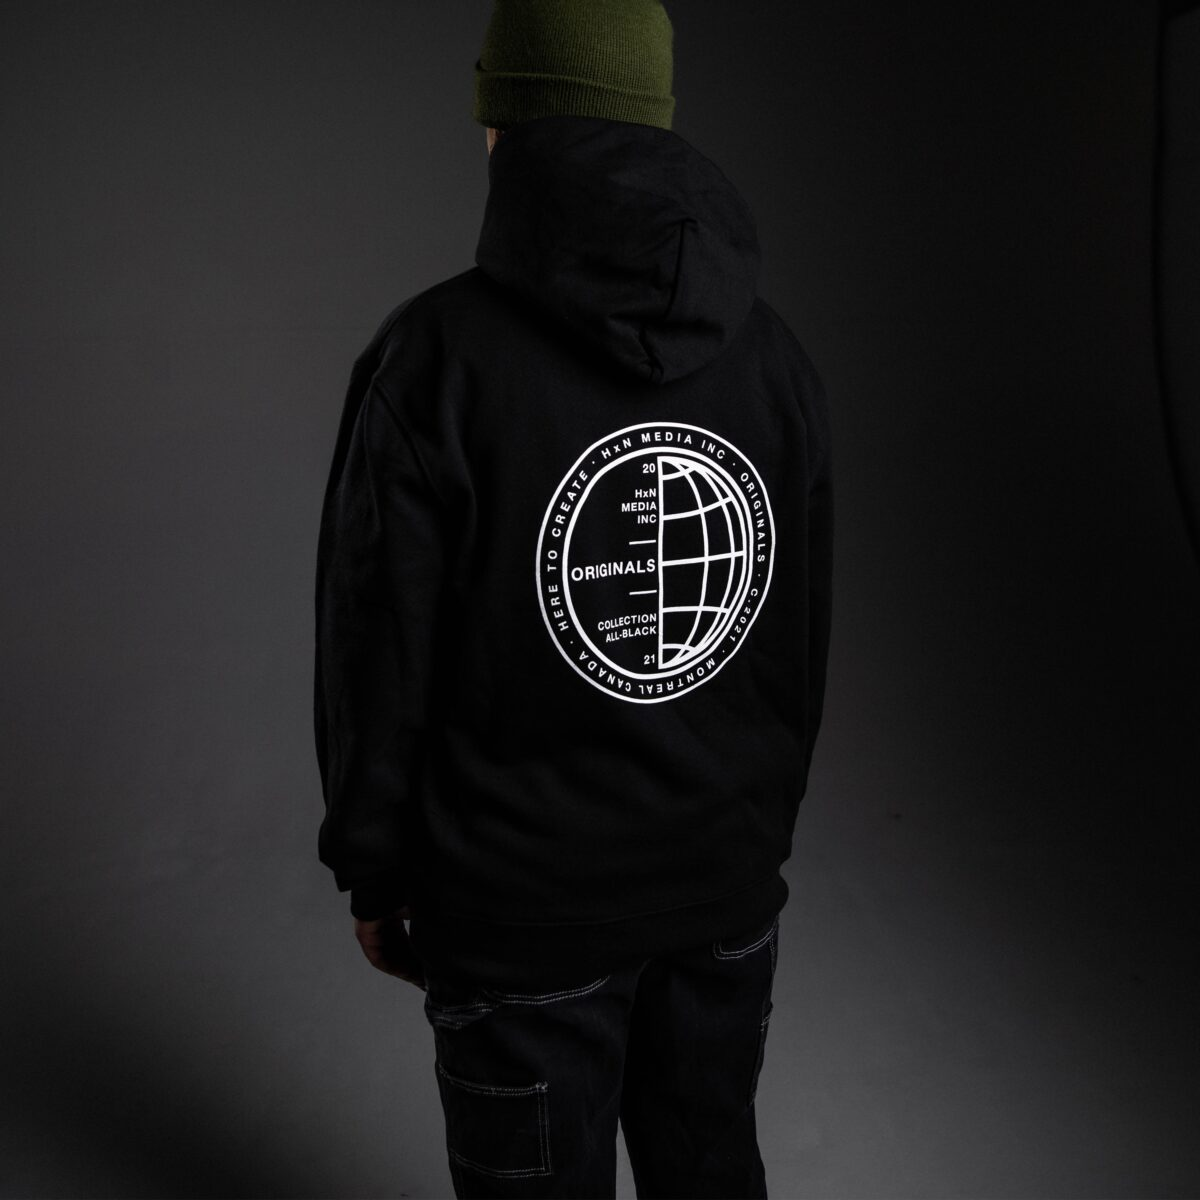 stamped hoodie back hxn media collection